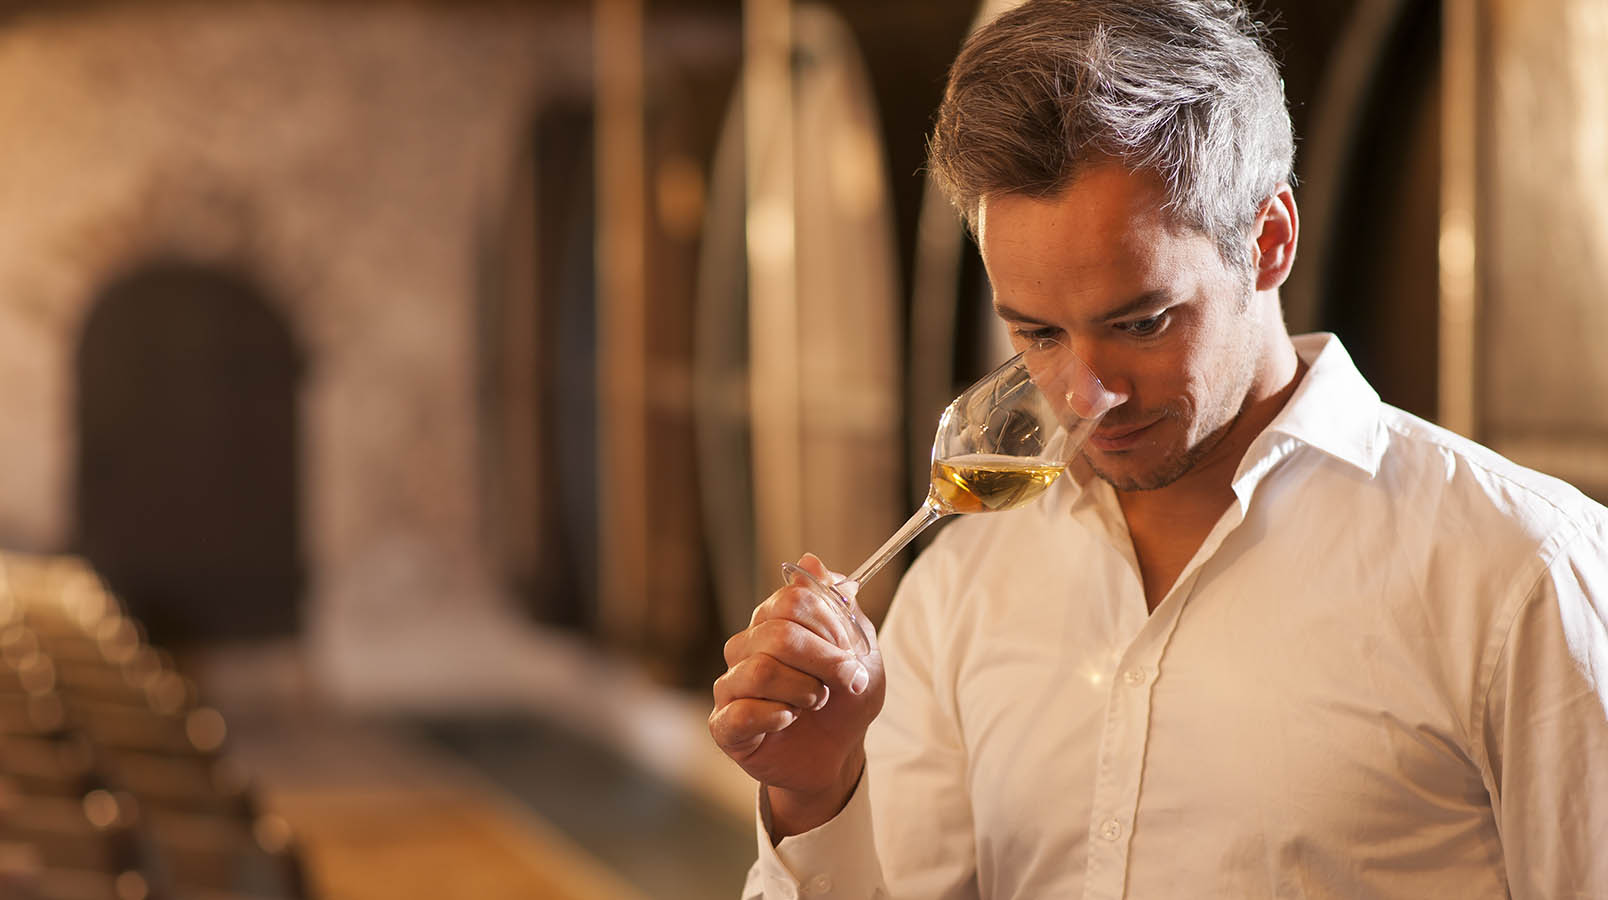 Tips from the school sommelier in St. Petersburg: How wine is prepared